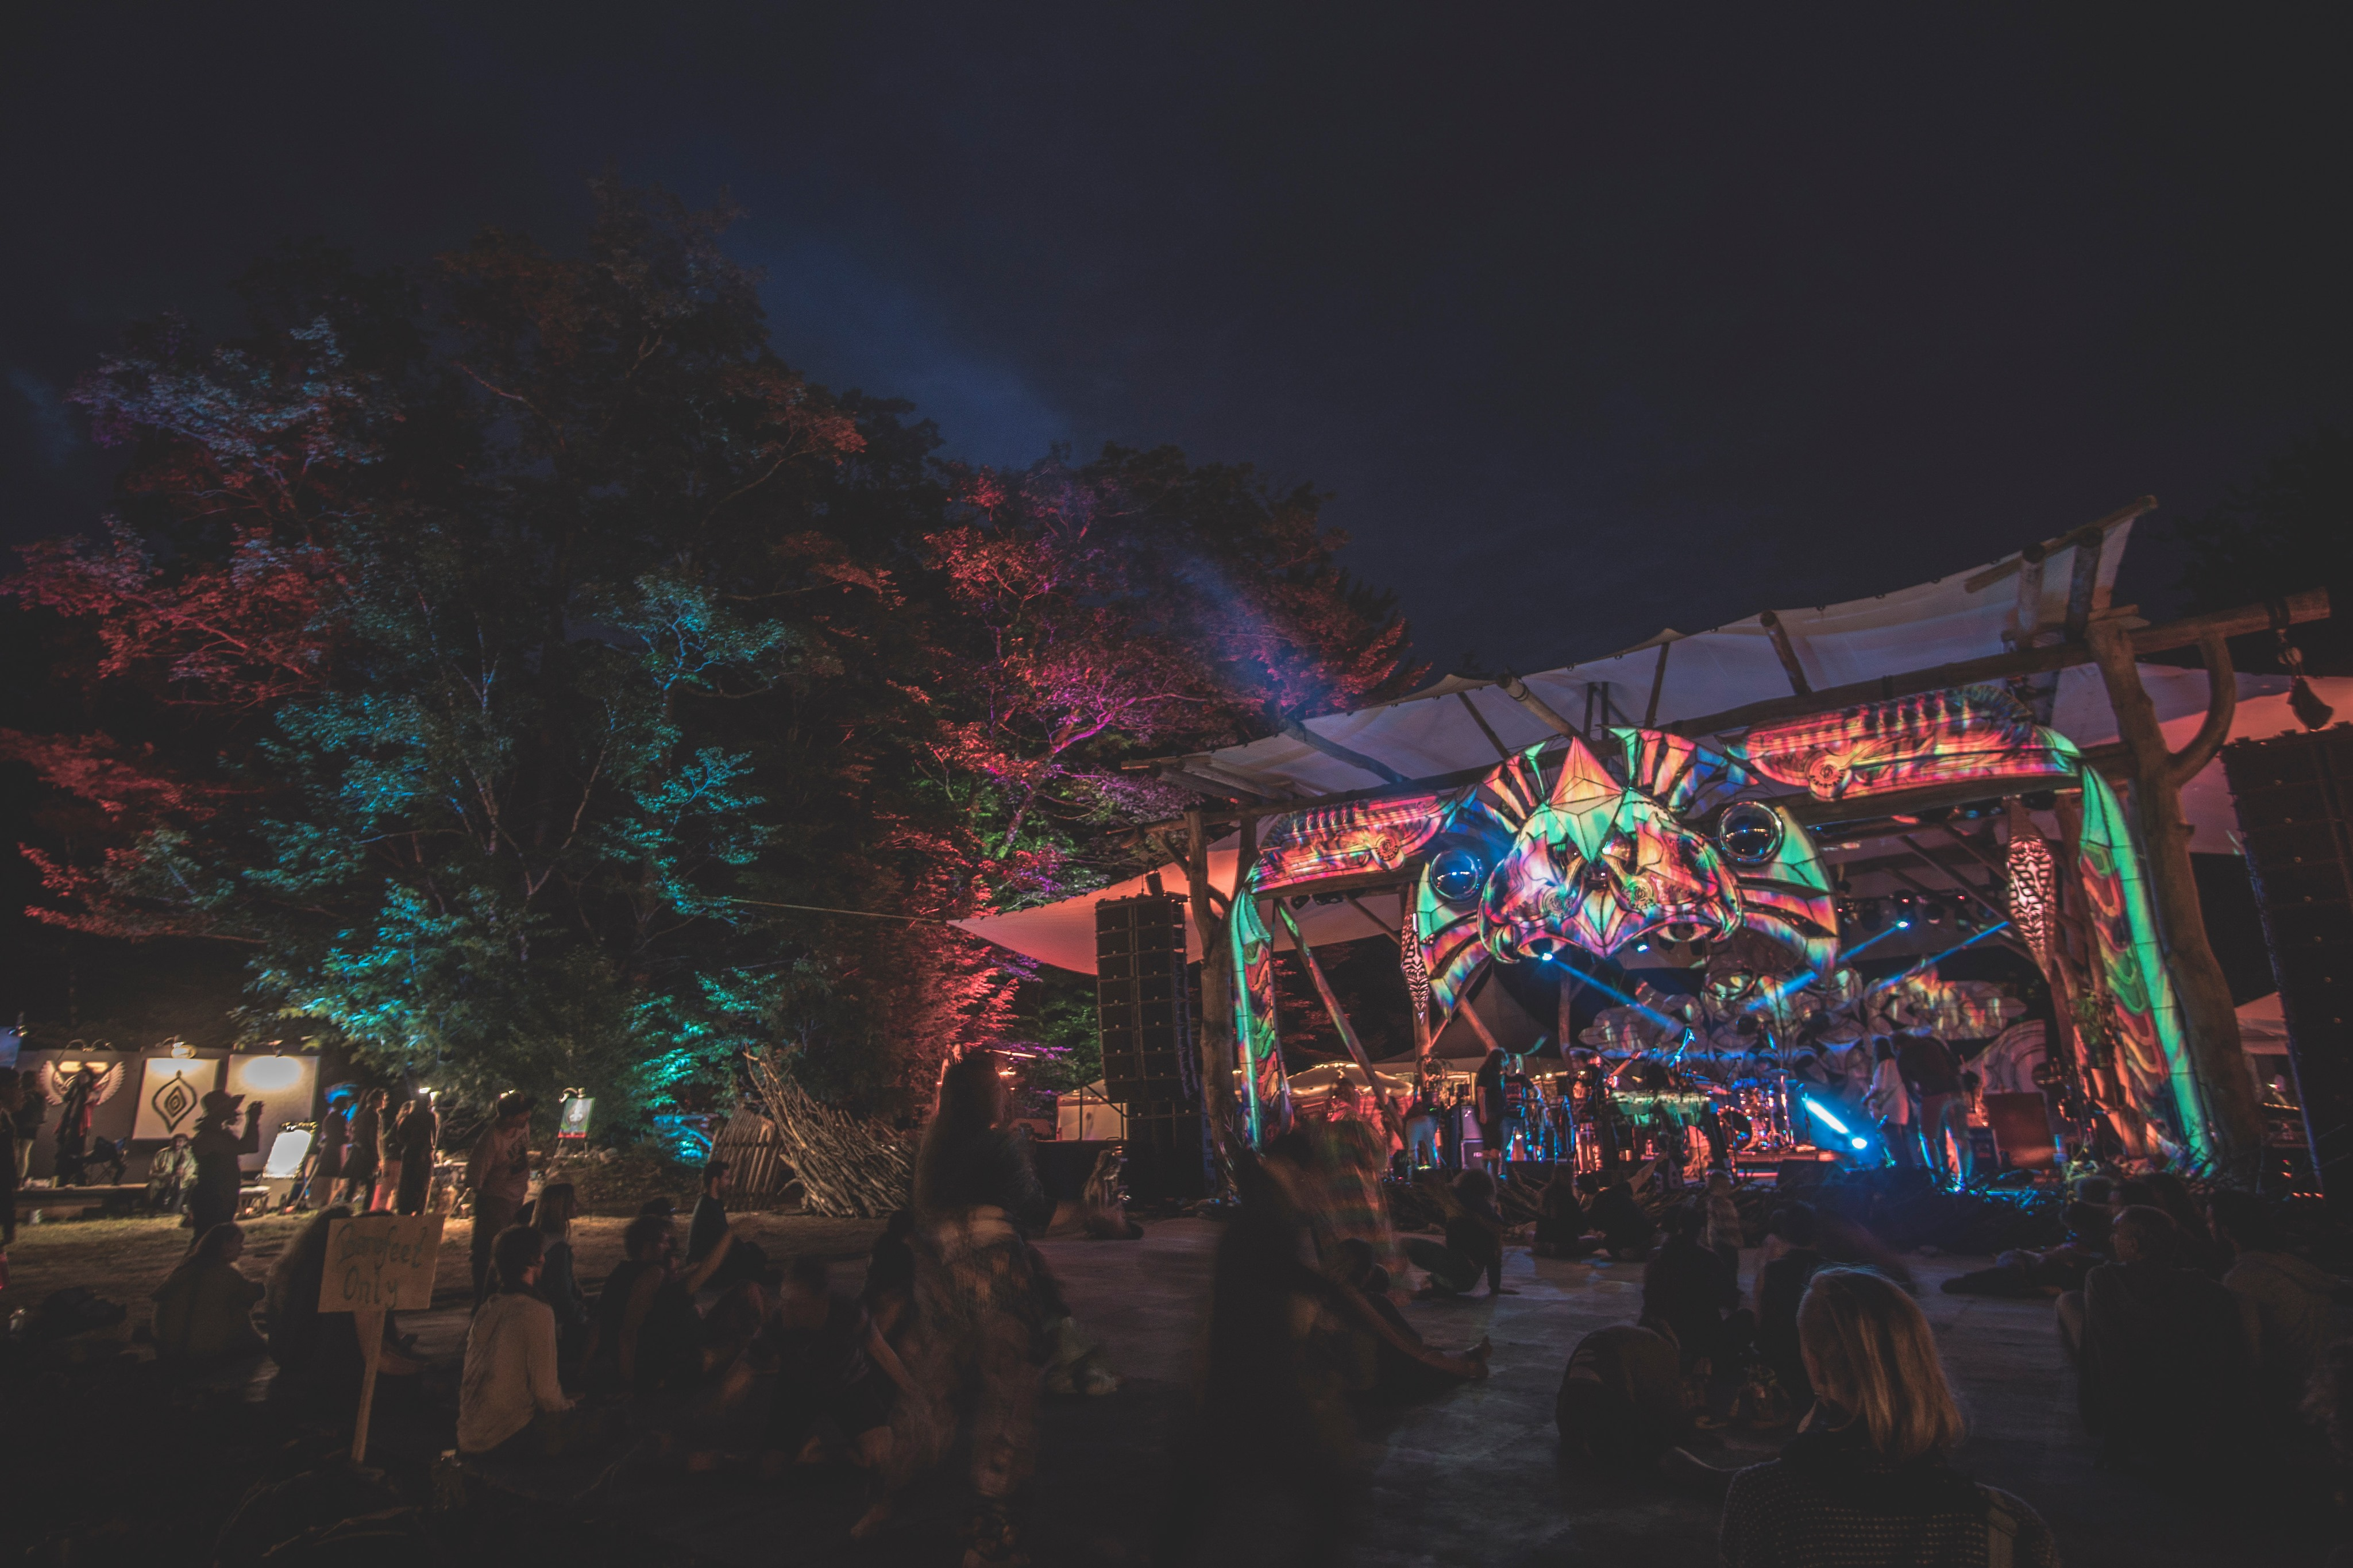 Festival Preview: Unifier Campout 2019